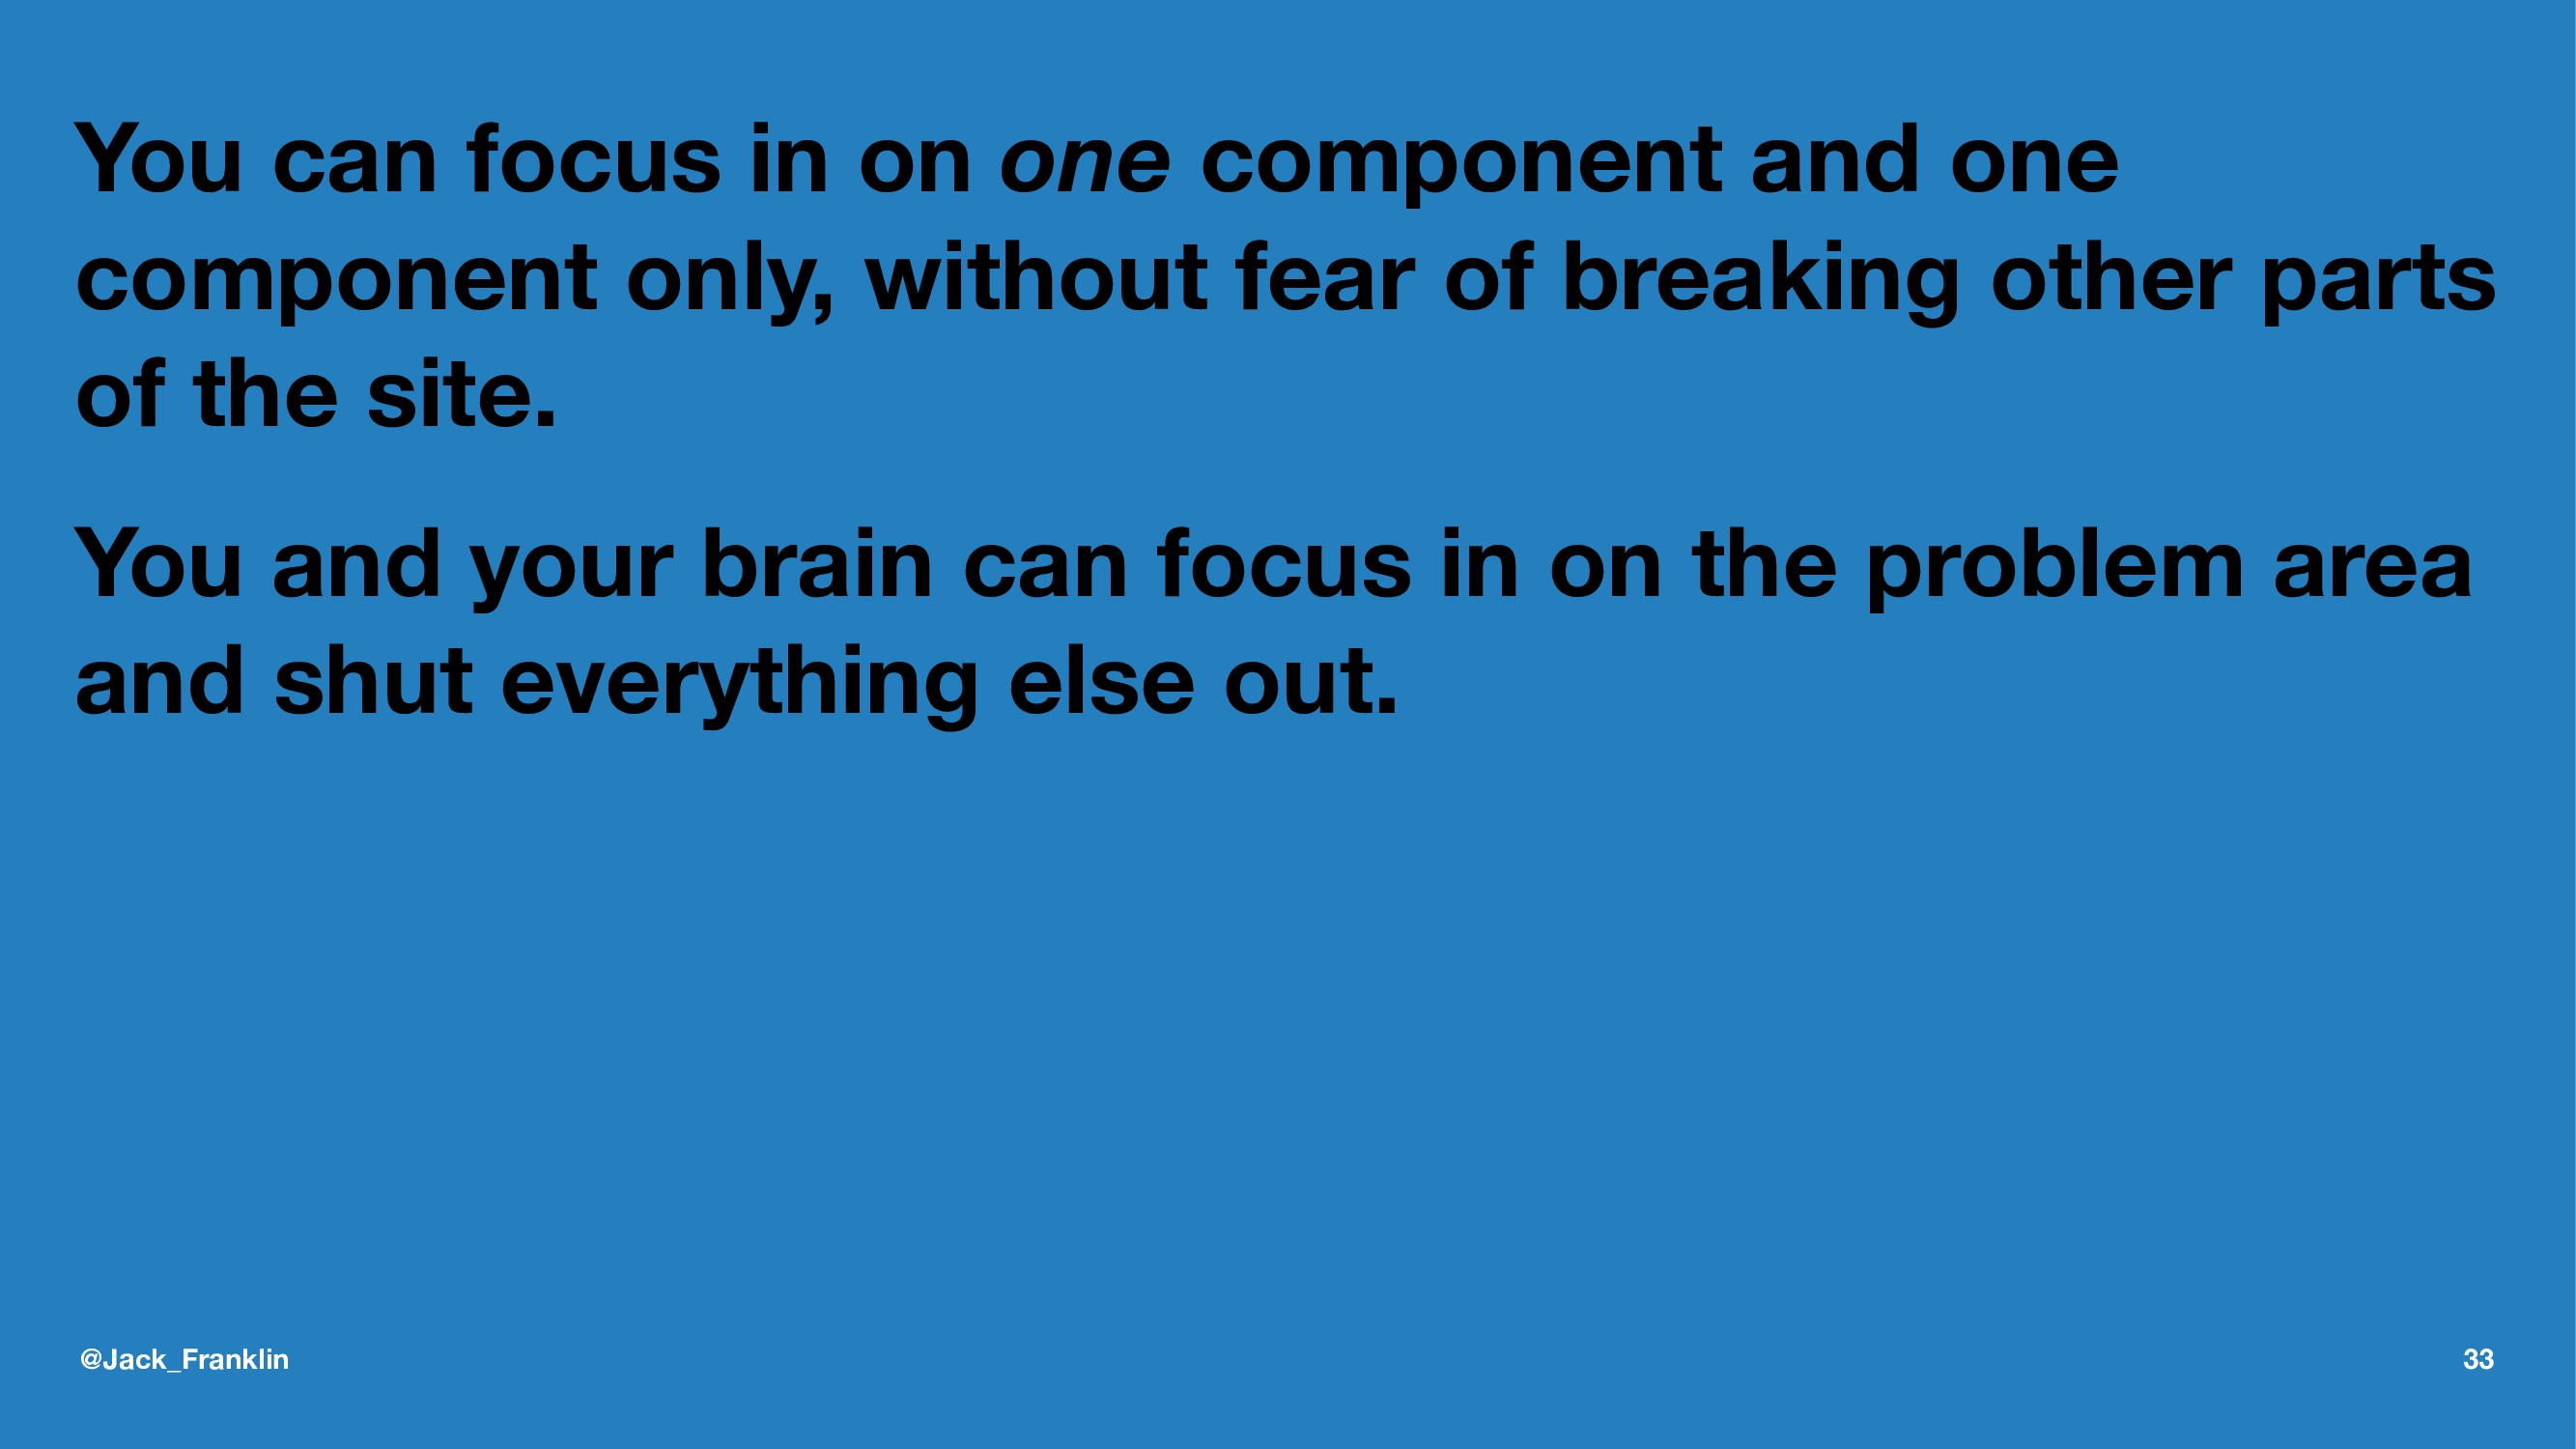 You can focus in on one component and one compo...